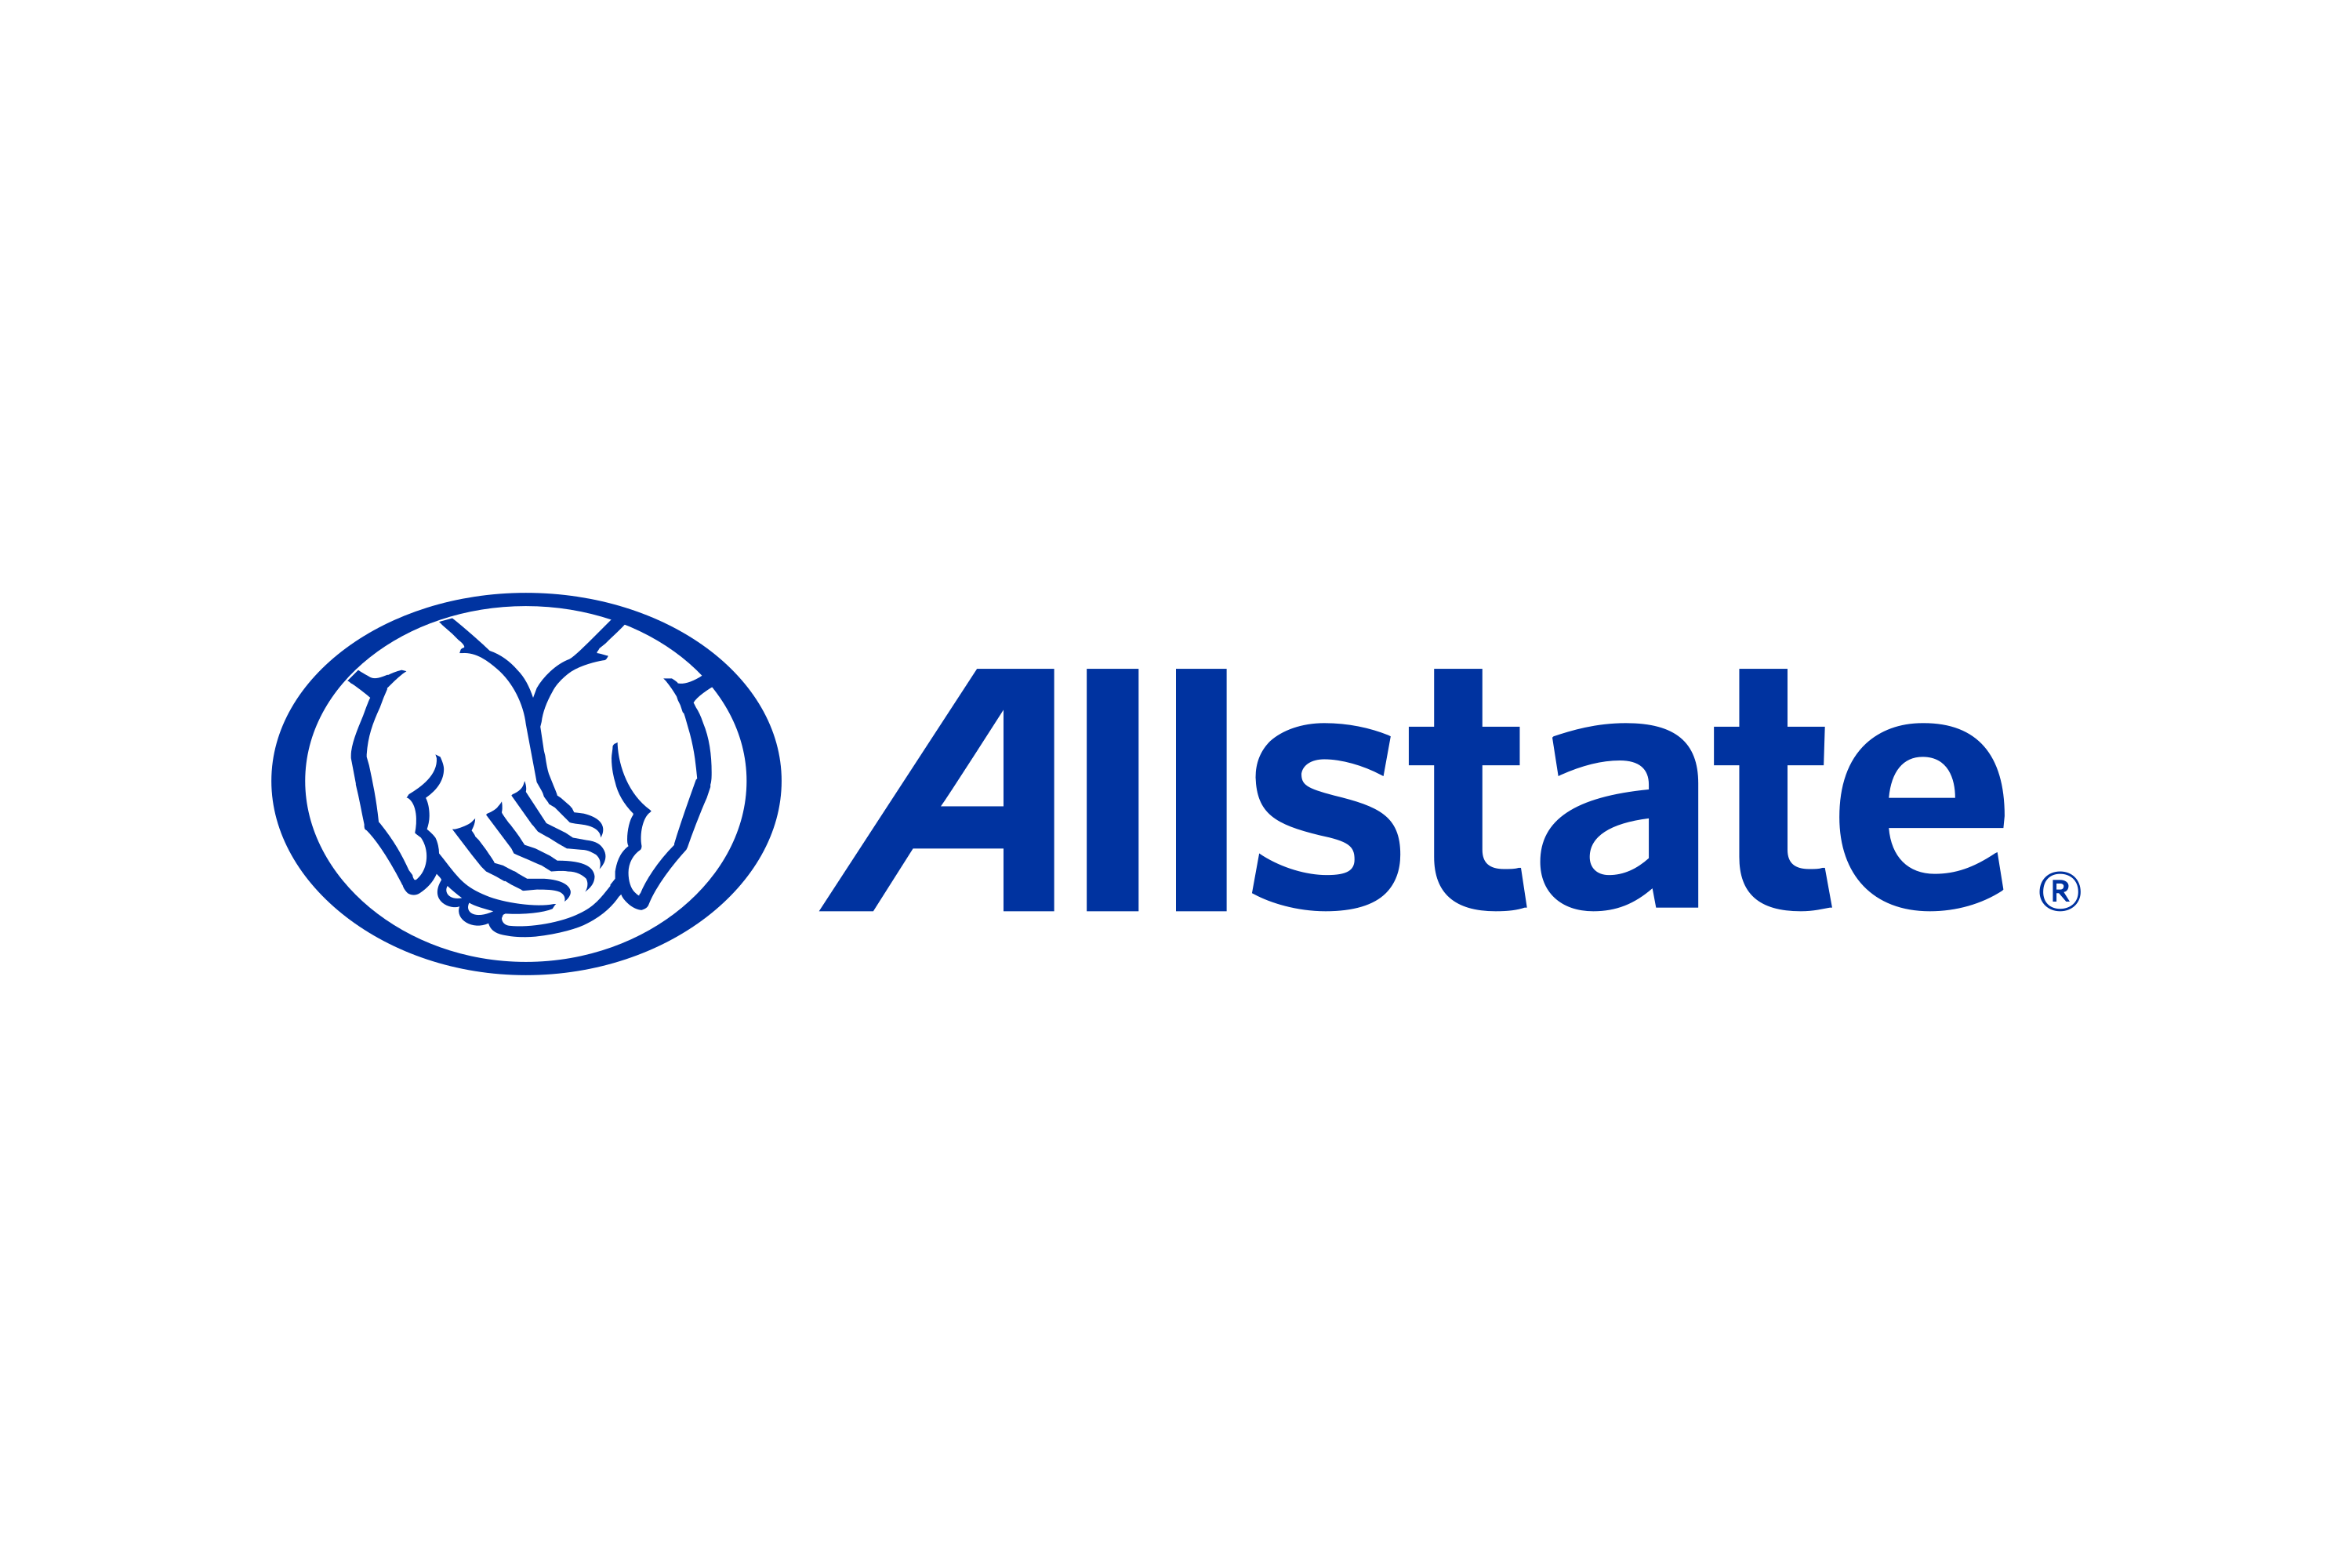 Allstate Rewards points with promo Codes